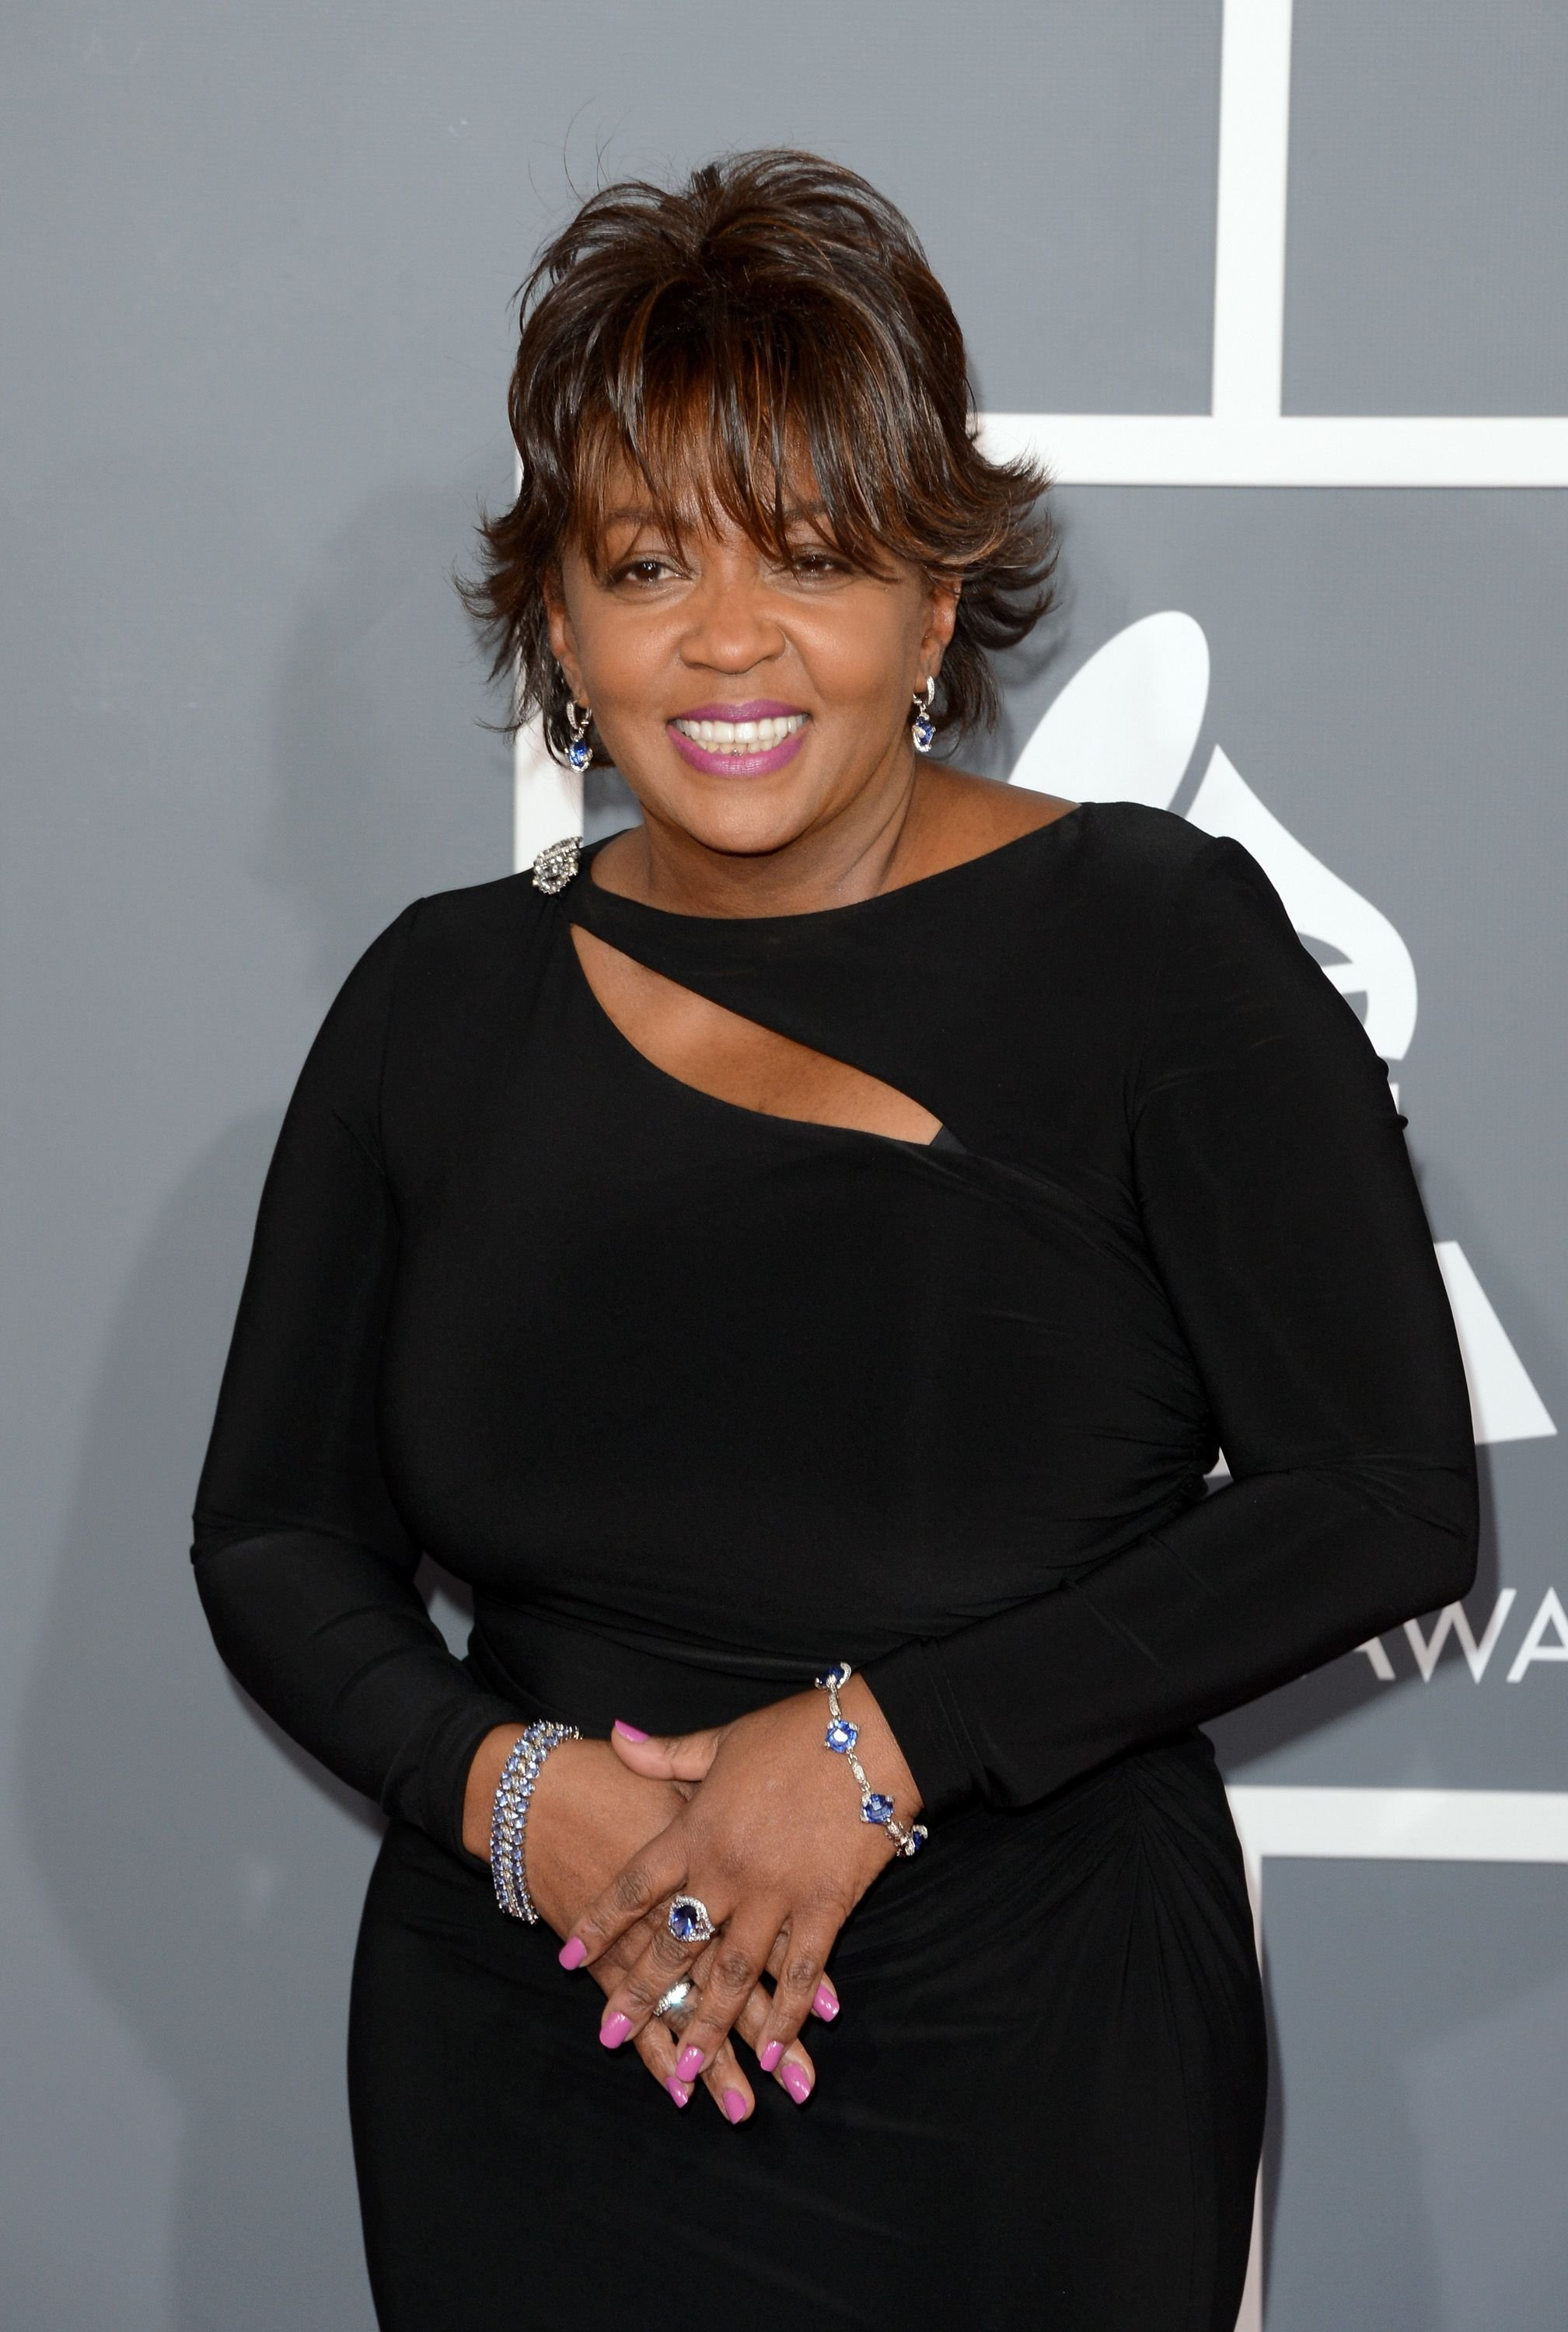 Singer Anita Baker arrives at the 55th Annual Grammy Awards at Staples Center on February 10, 2013 in Los Angeles, California. | Photo: Getty Images.